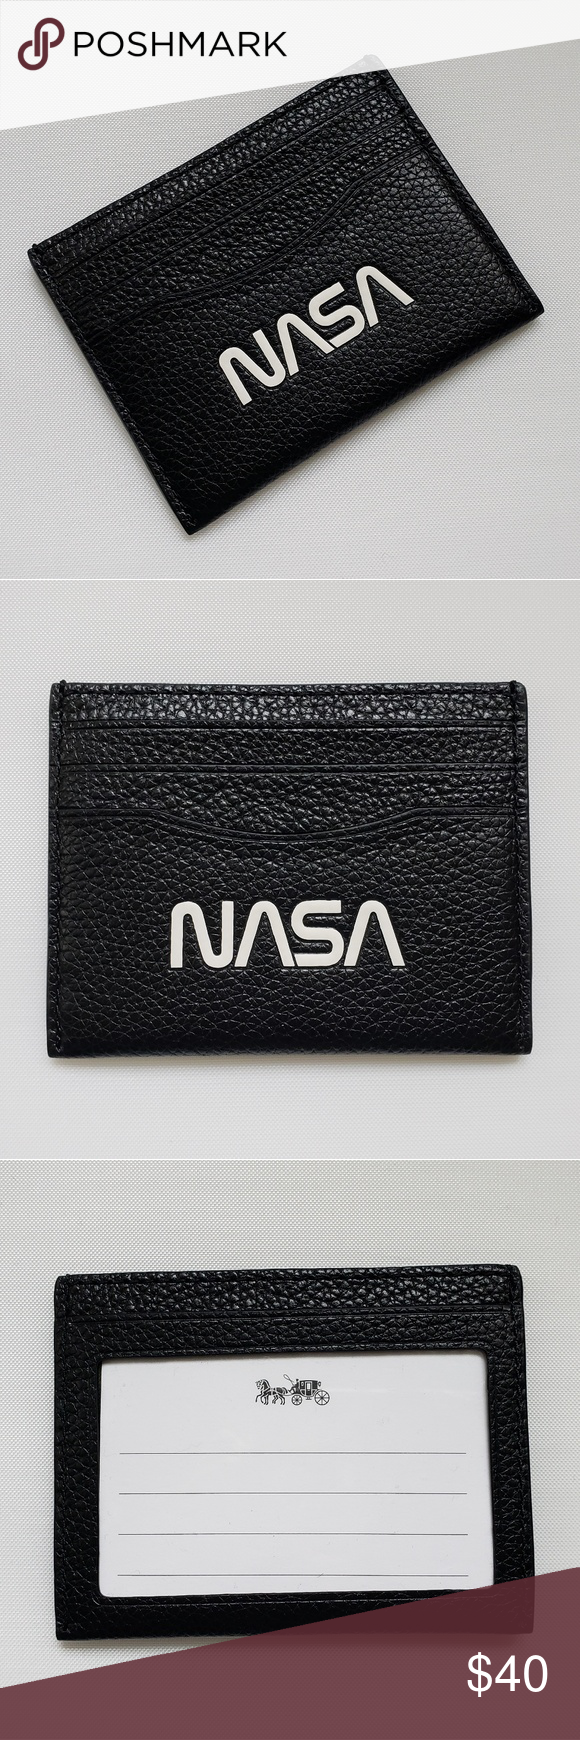 Coach Nasa Id Card Case Things To Sell Key Card Holder Coach